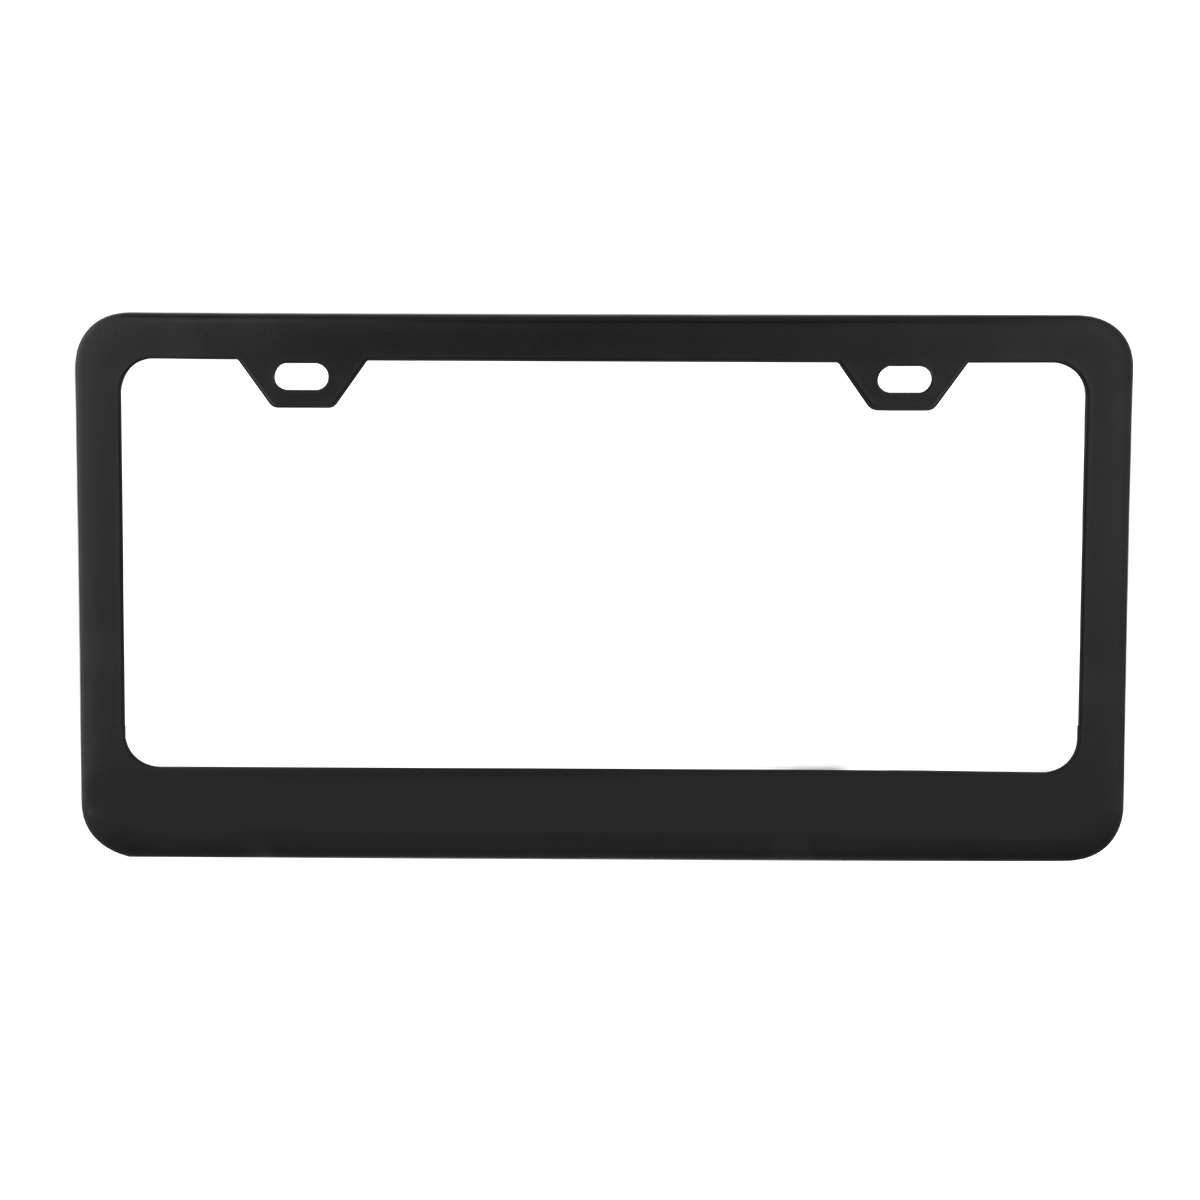 60439 Flat/Matte Plain Black 2 Hole License Plate Frame